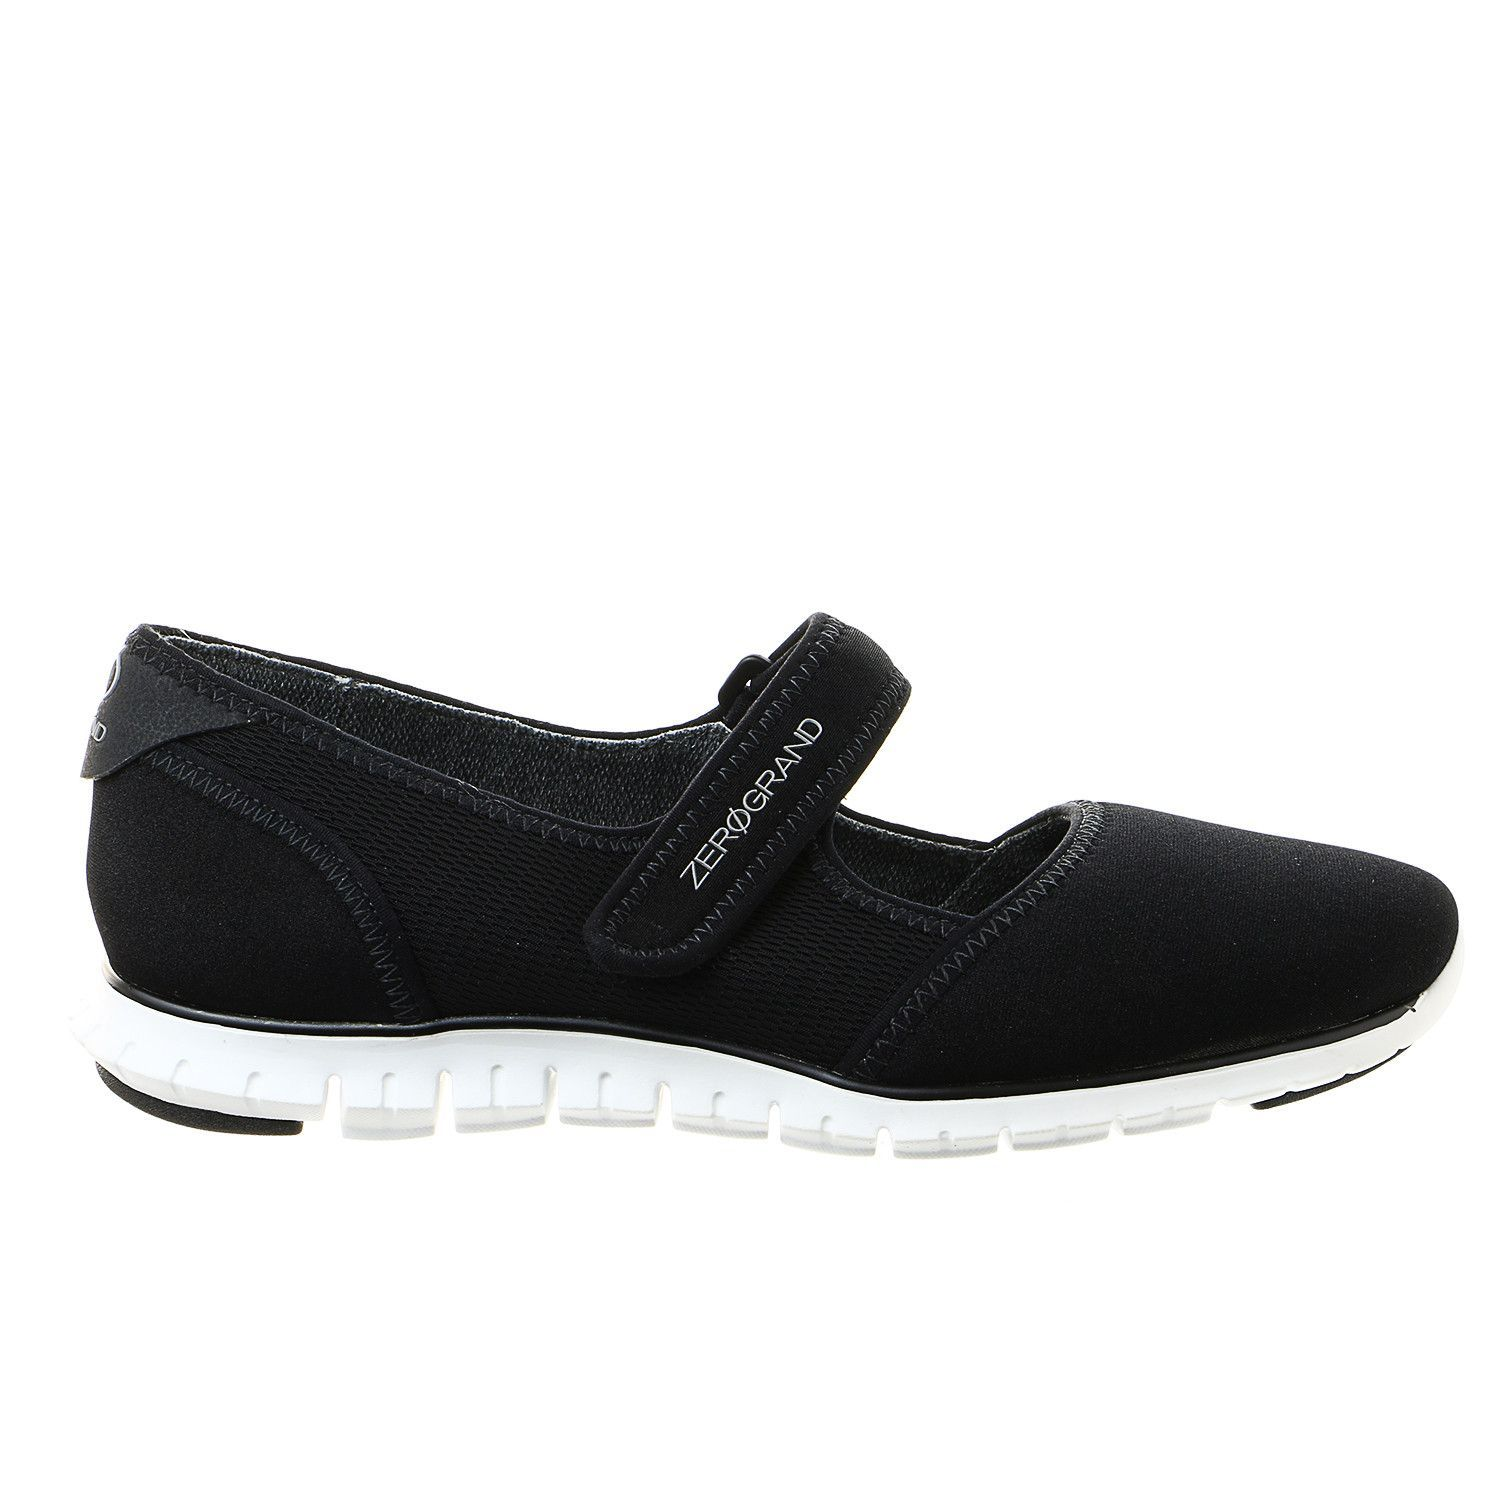 Cole Haan Zerogrand Mary Jane Fashion Sneaker Shoe - Womens